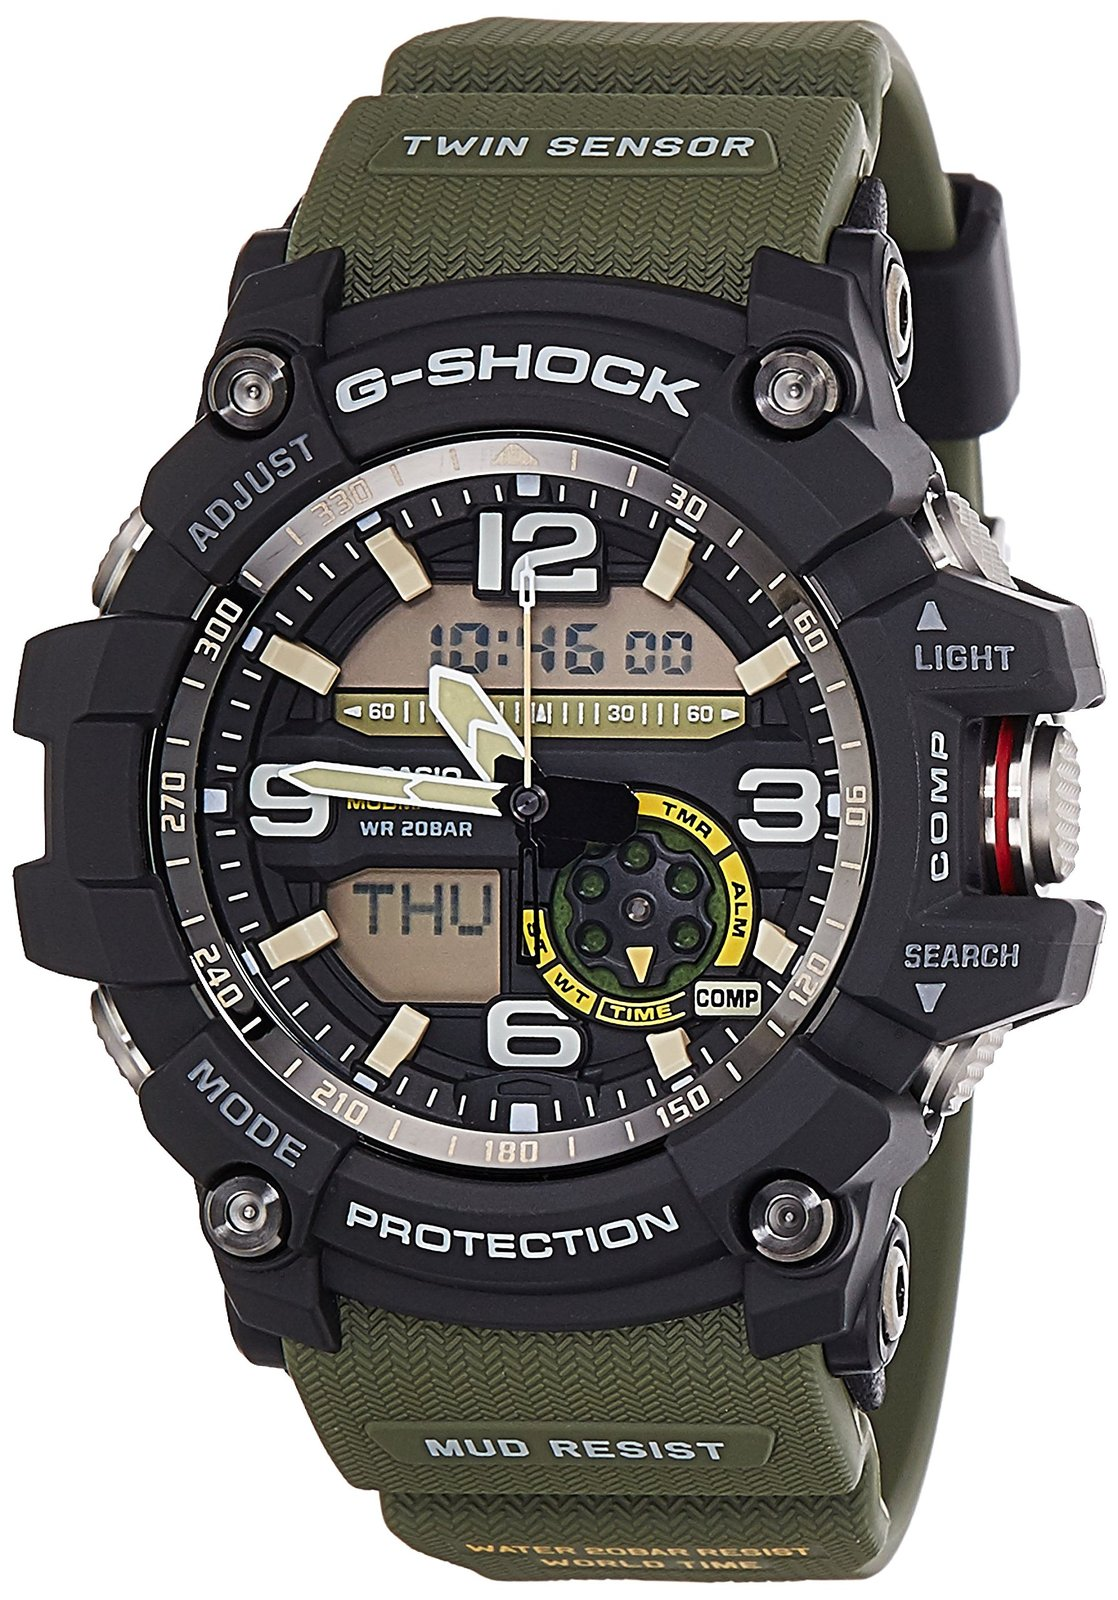 Casio G SHOCK MUDMASTER Mens Watch GG 1000 1A3DR Watches